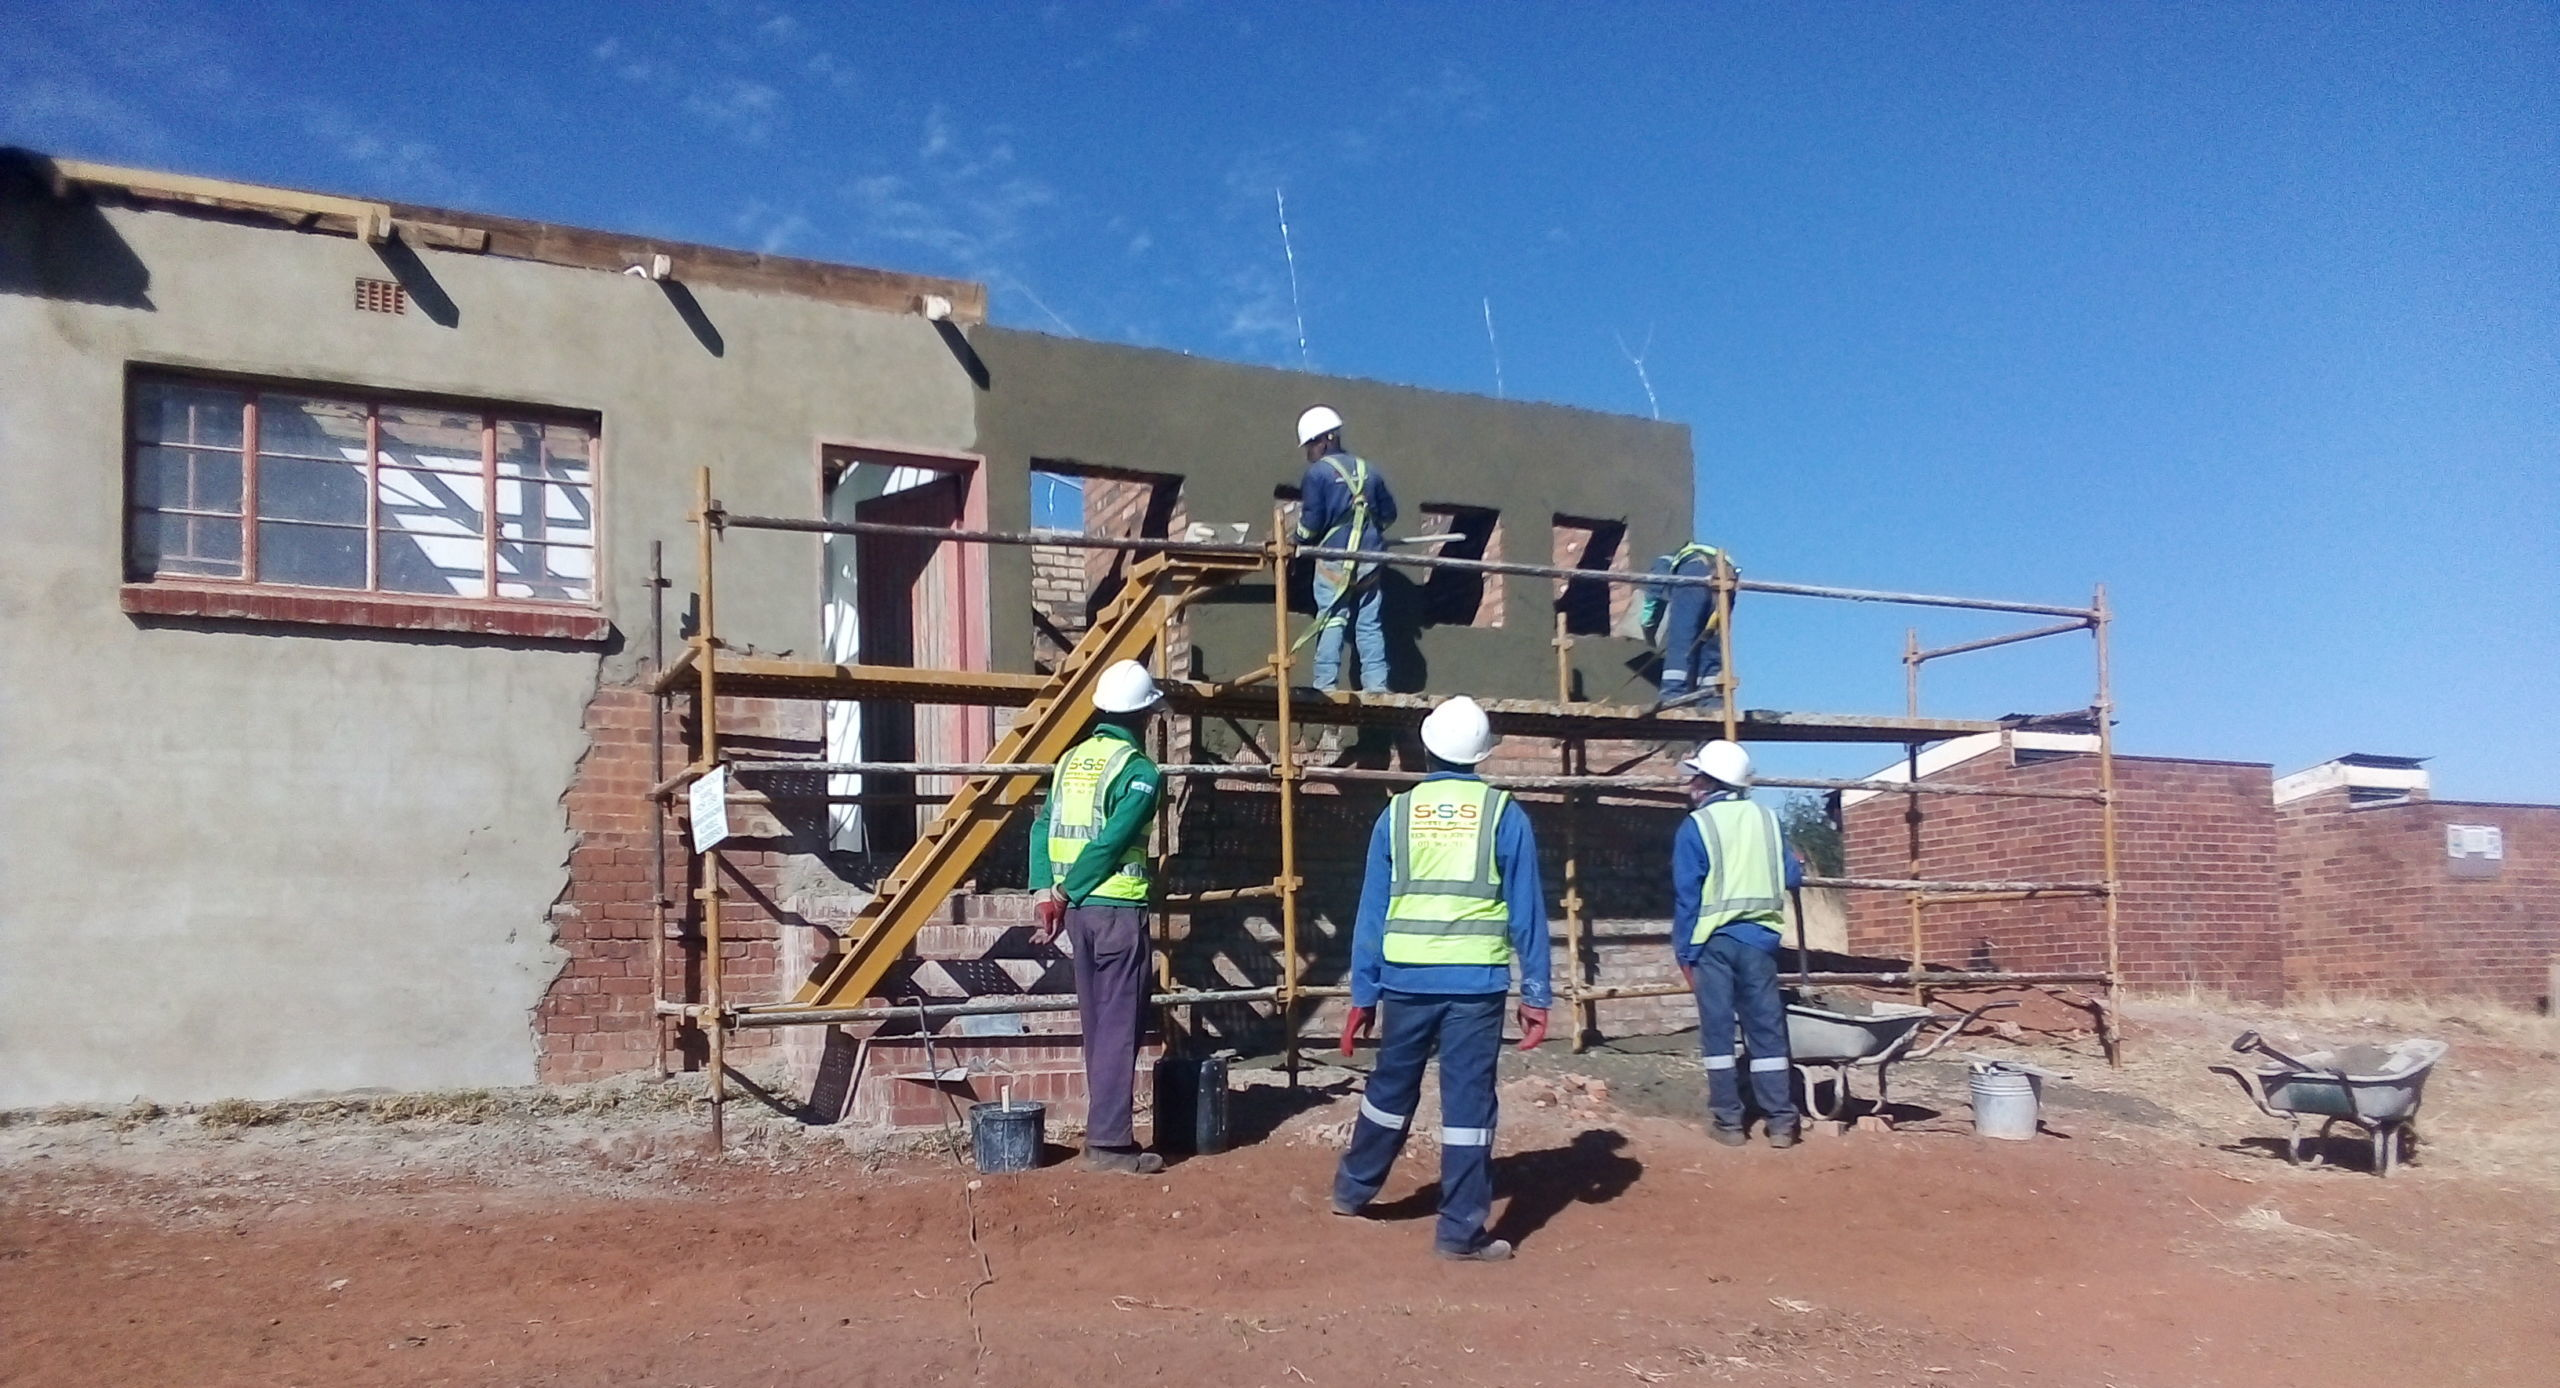 Lukhozi consulting engineers - Civil & Structural Engineers